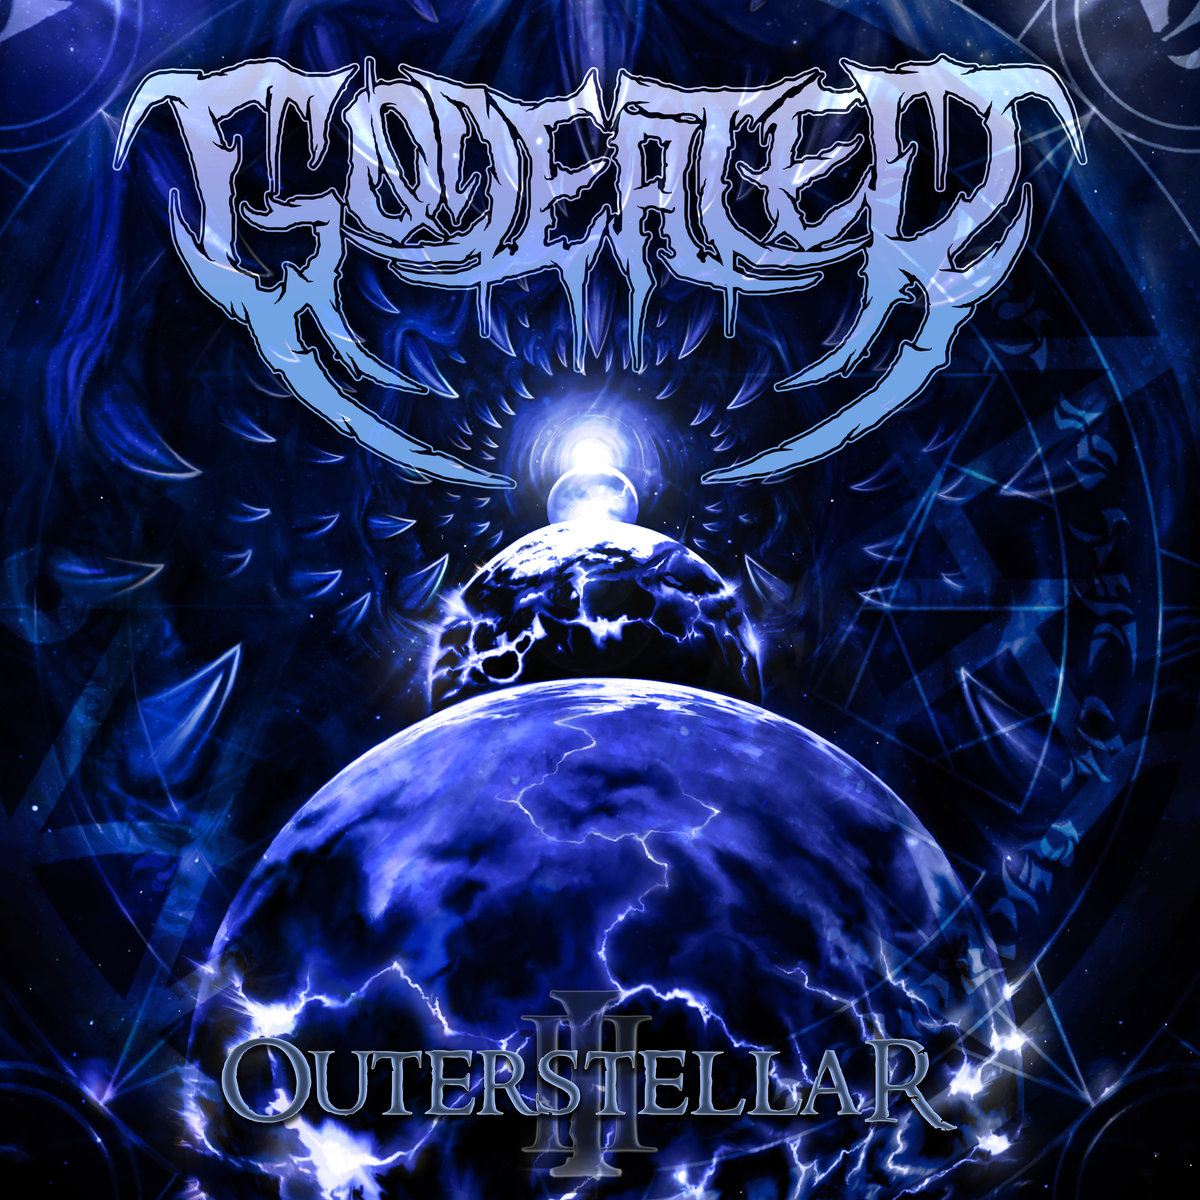 Godeater – Outerstellar